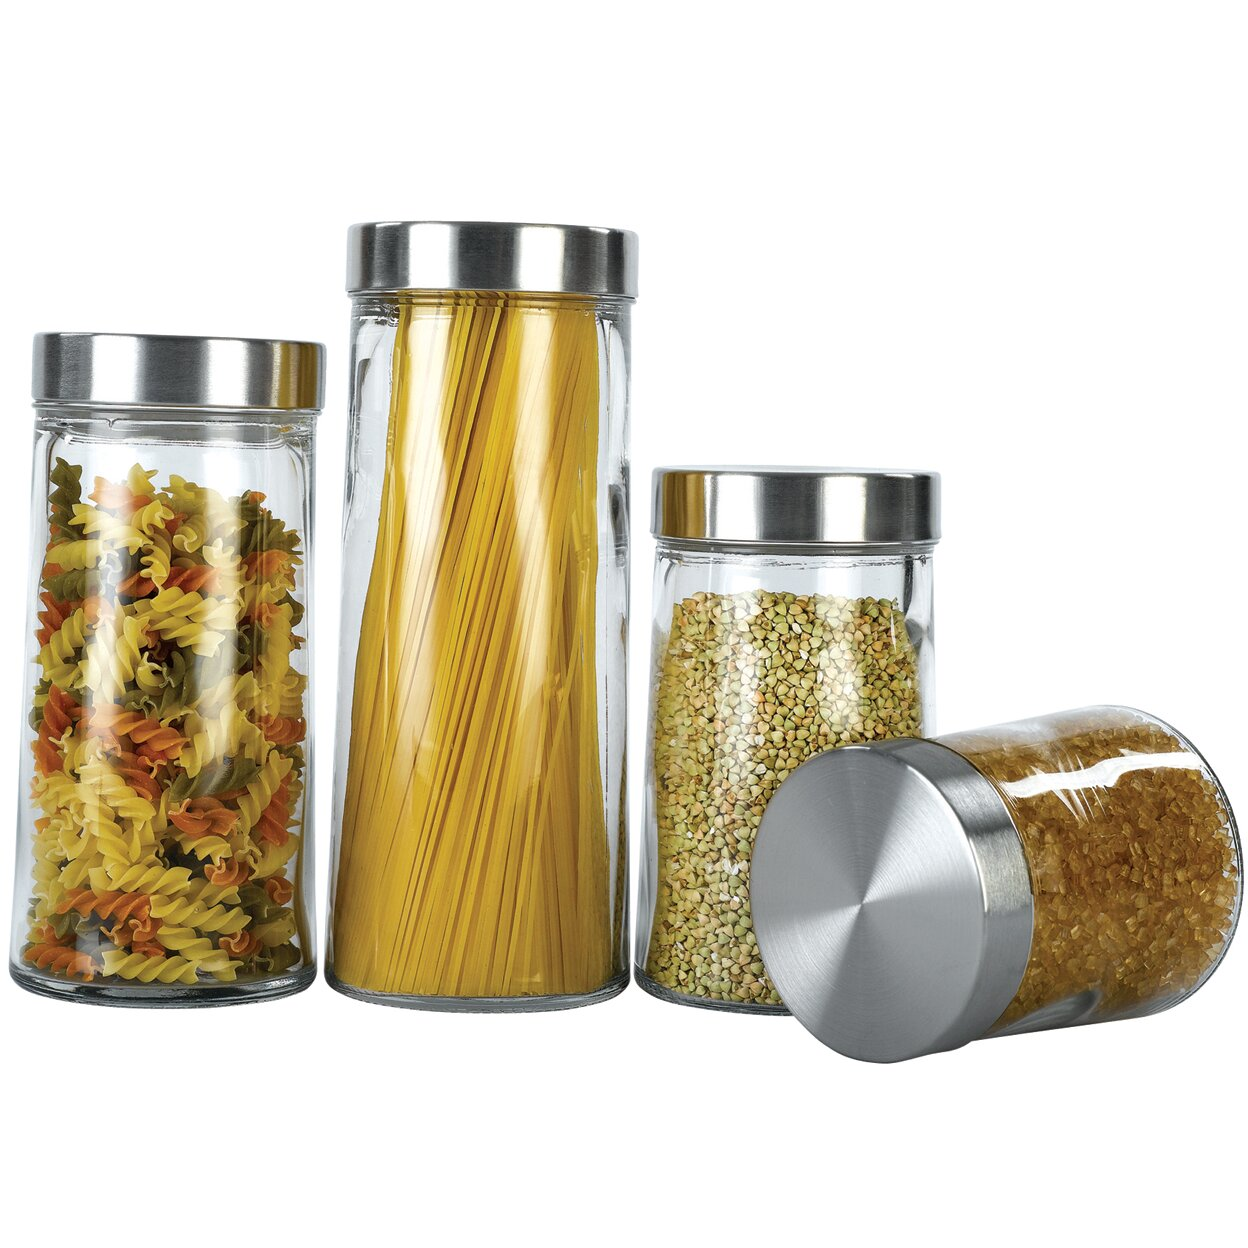 Yellow Canister Sets Kitchen Euro Ware Glass Plain 4 Piece Kitchen Canister Set Reviews Wayfair